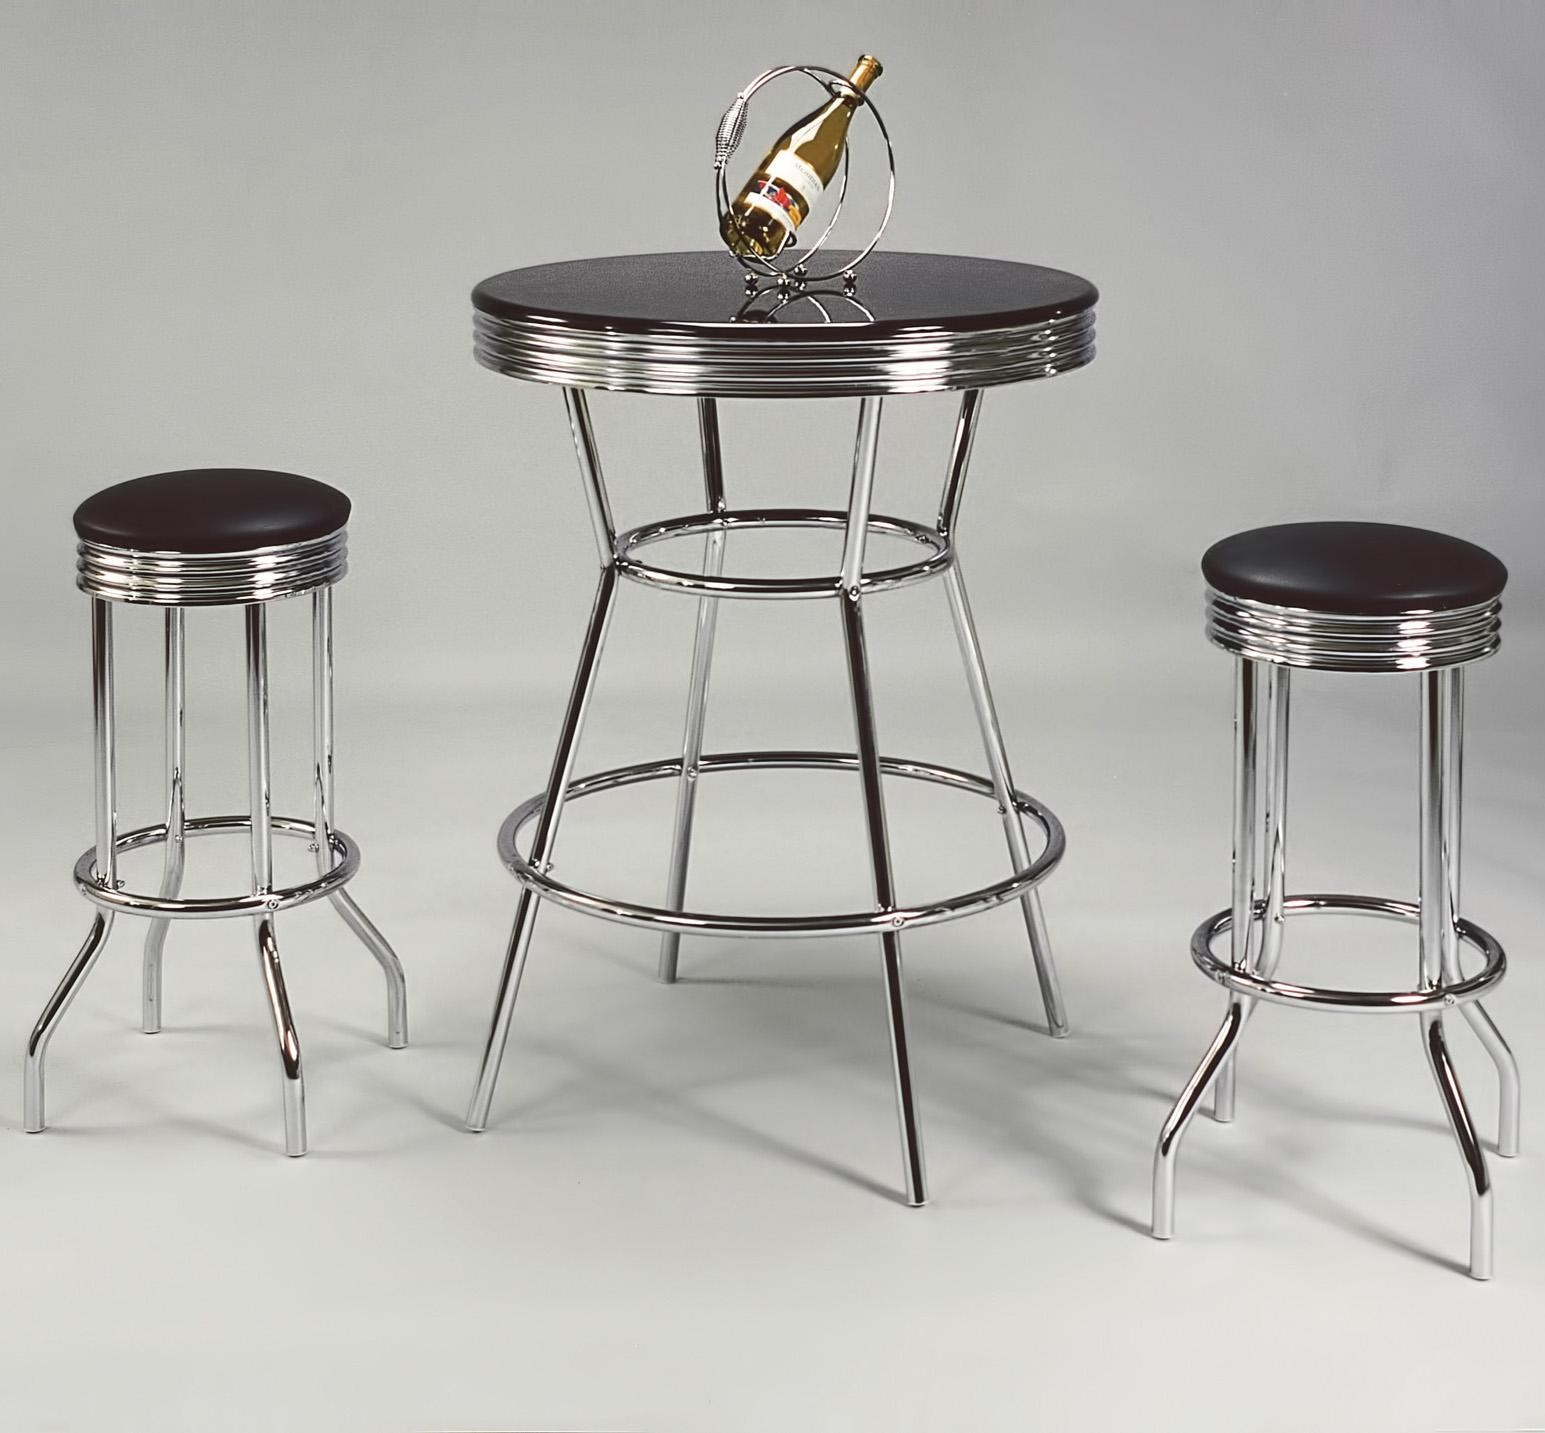 Crown Mark Retro 3 Piece Bar Table And Swivel Stools Set   Miskelly  Furniture   Pub Table And Stool Set